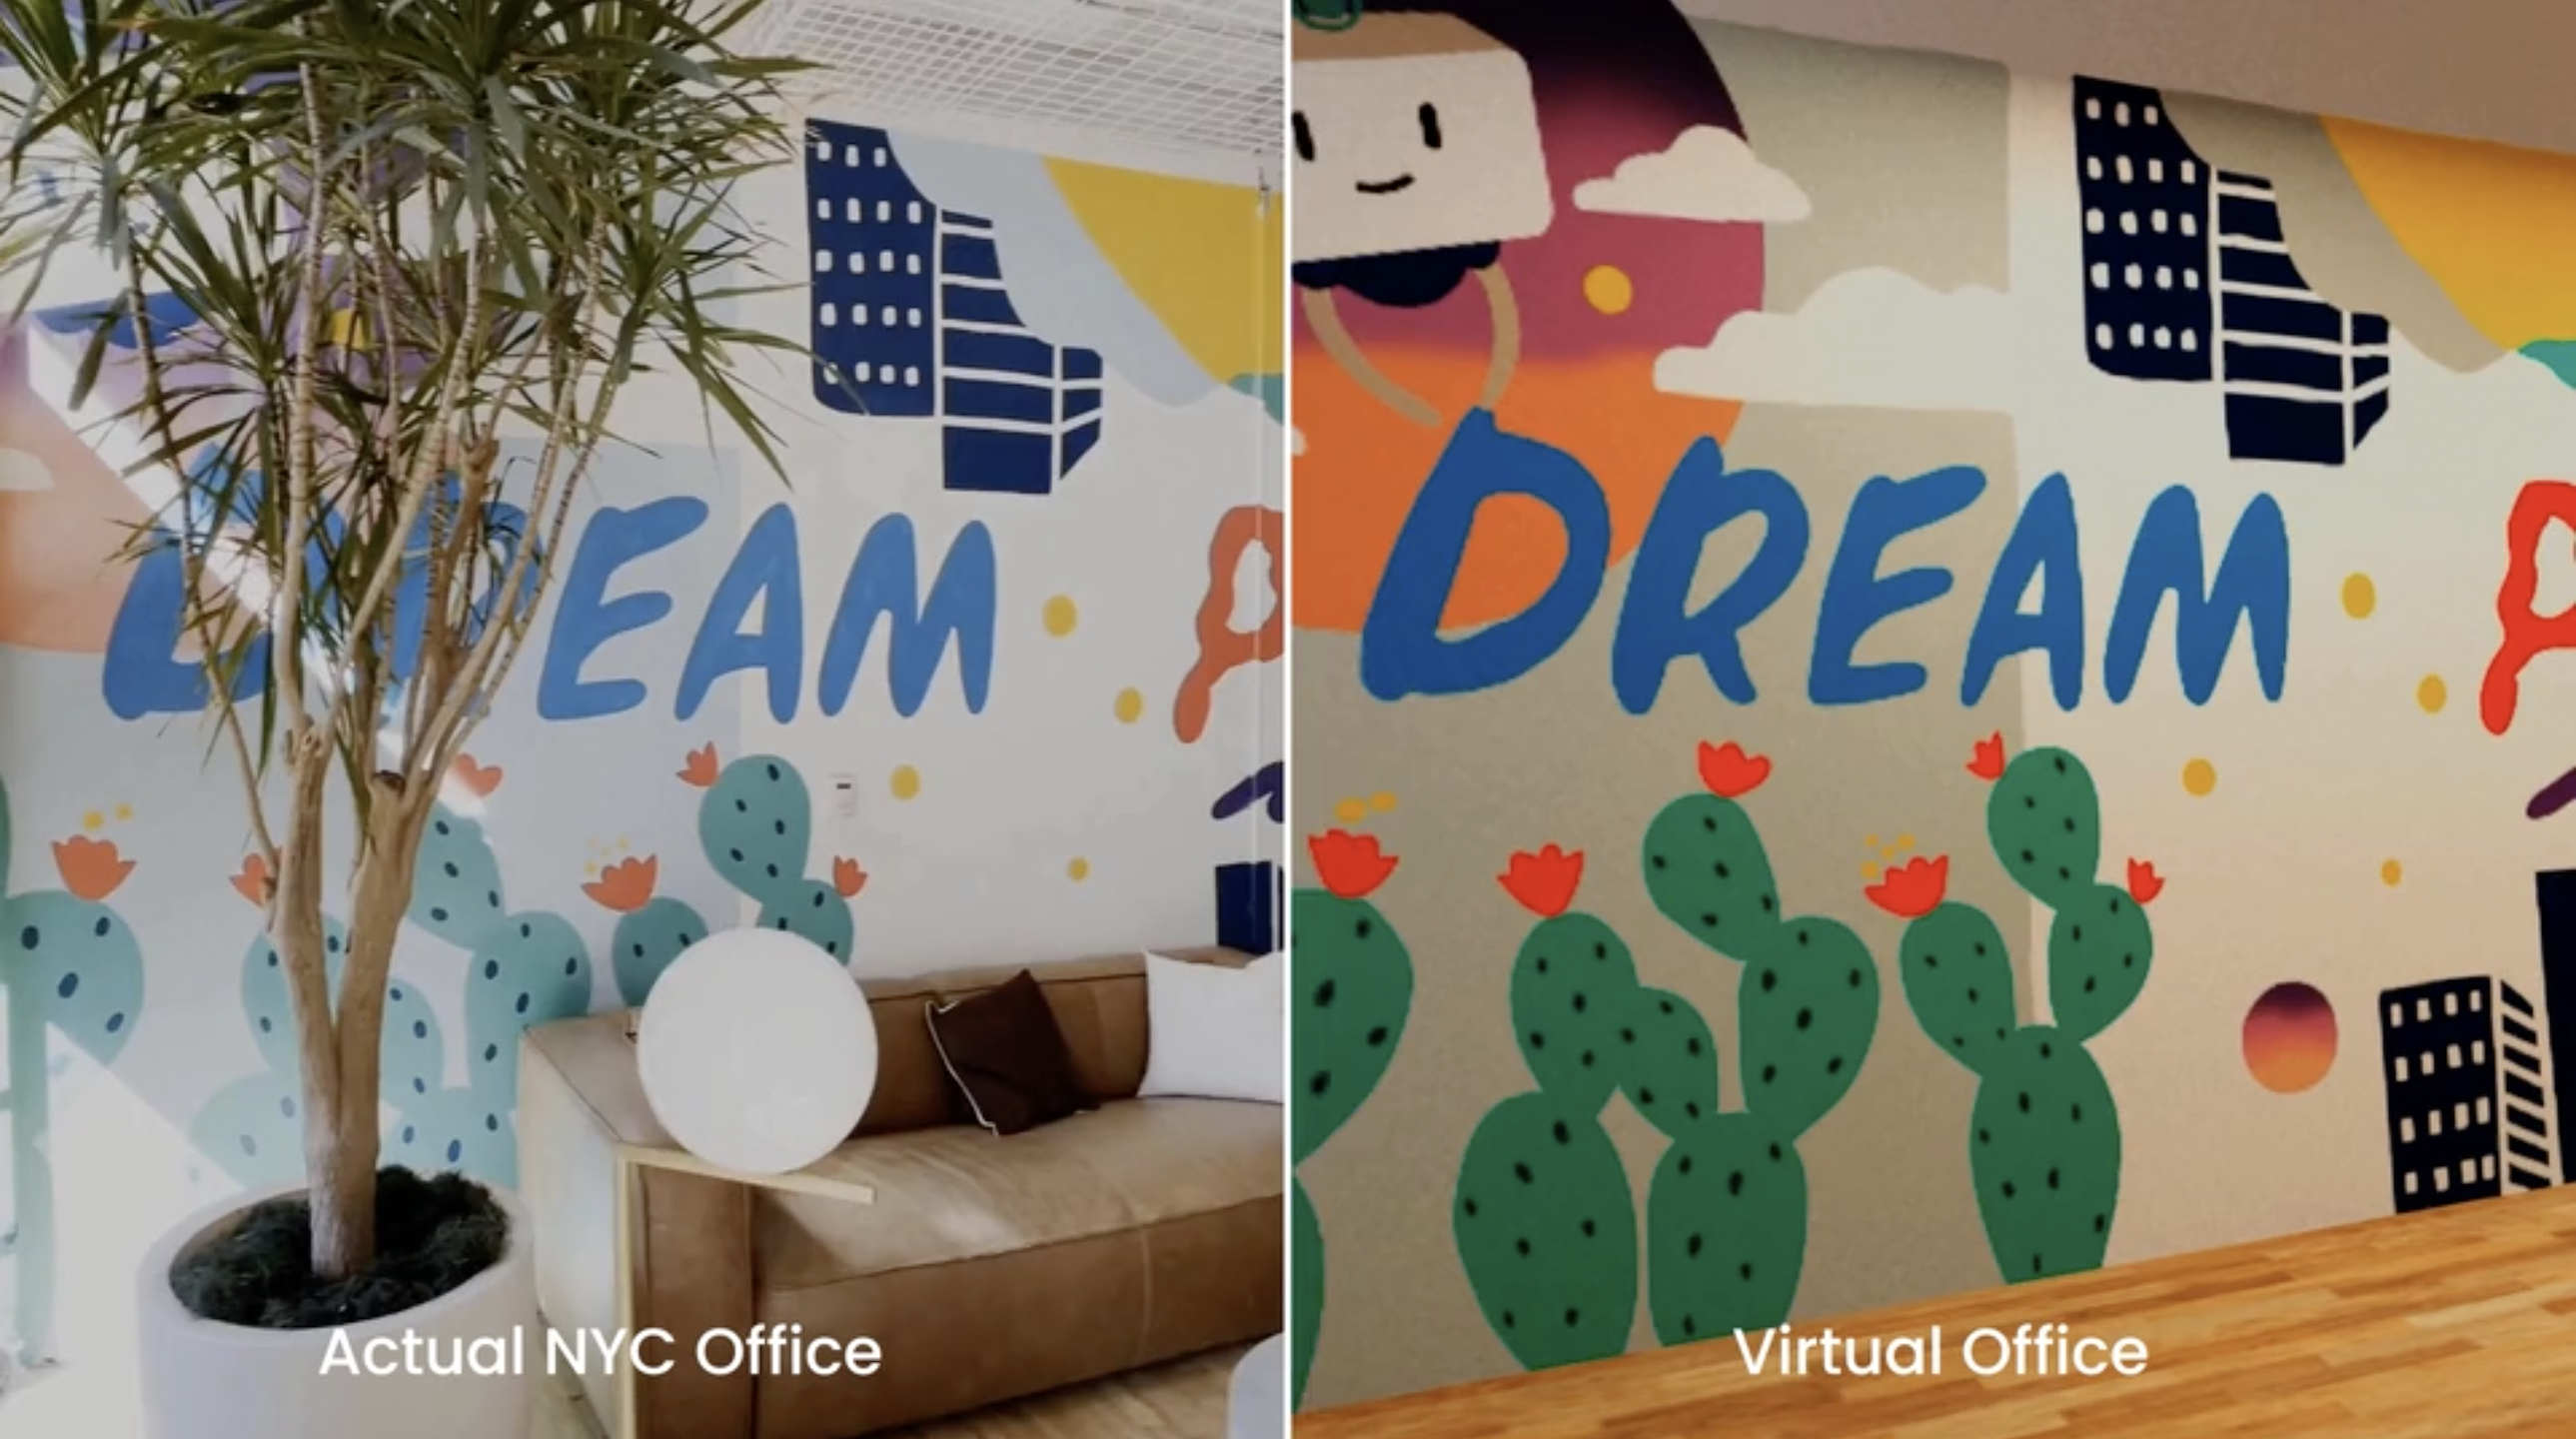 For Trello Together, an NYC Office Inspires a Virtual Mirror